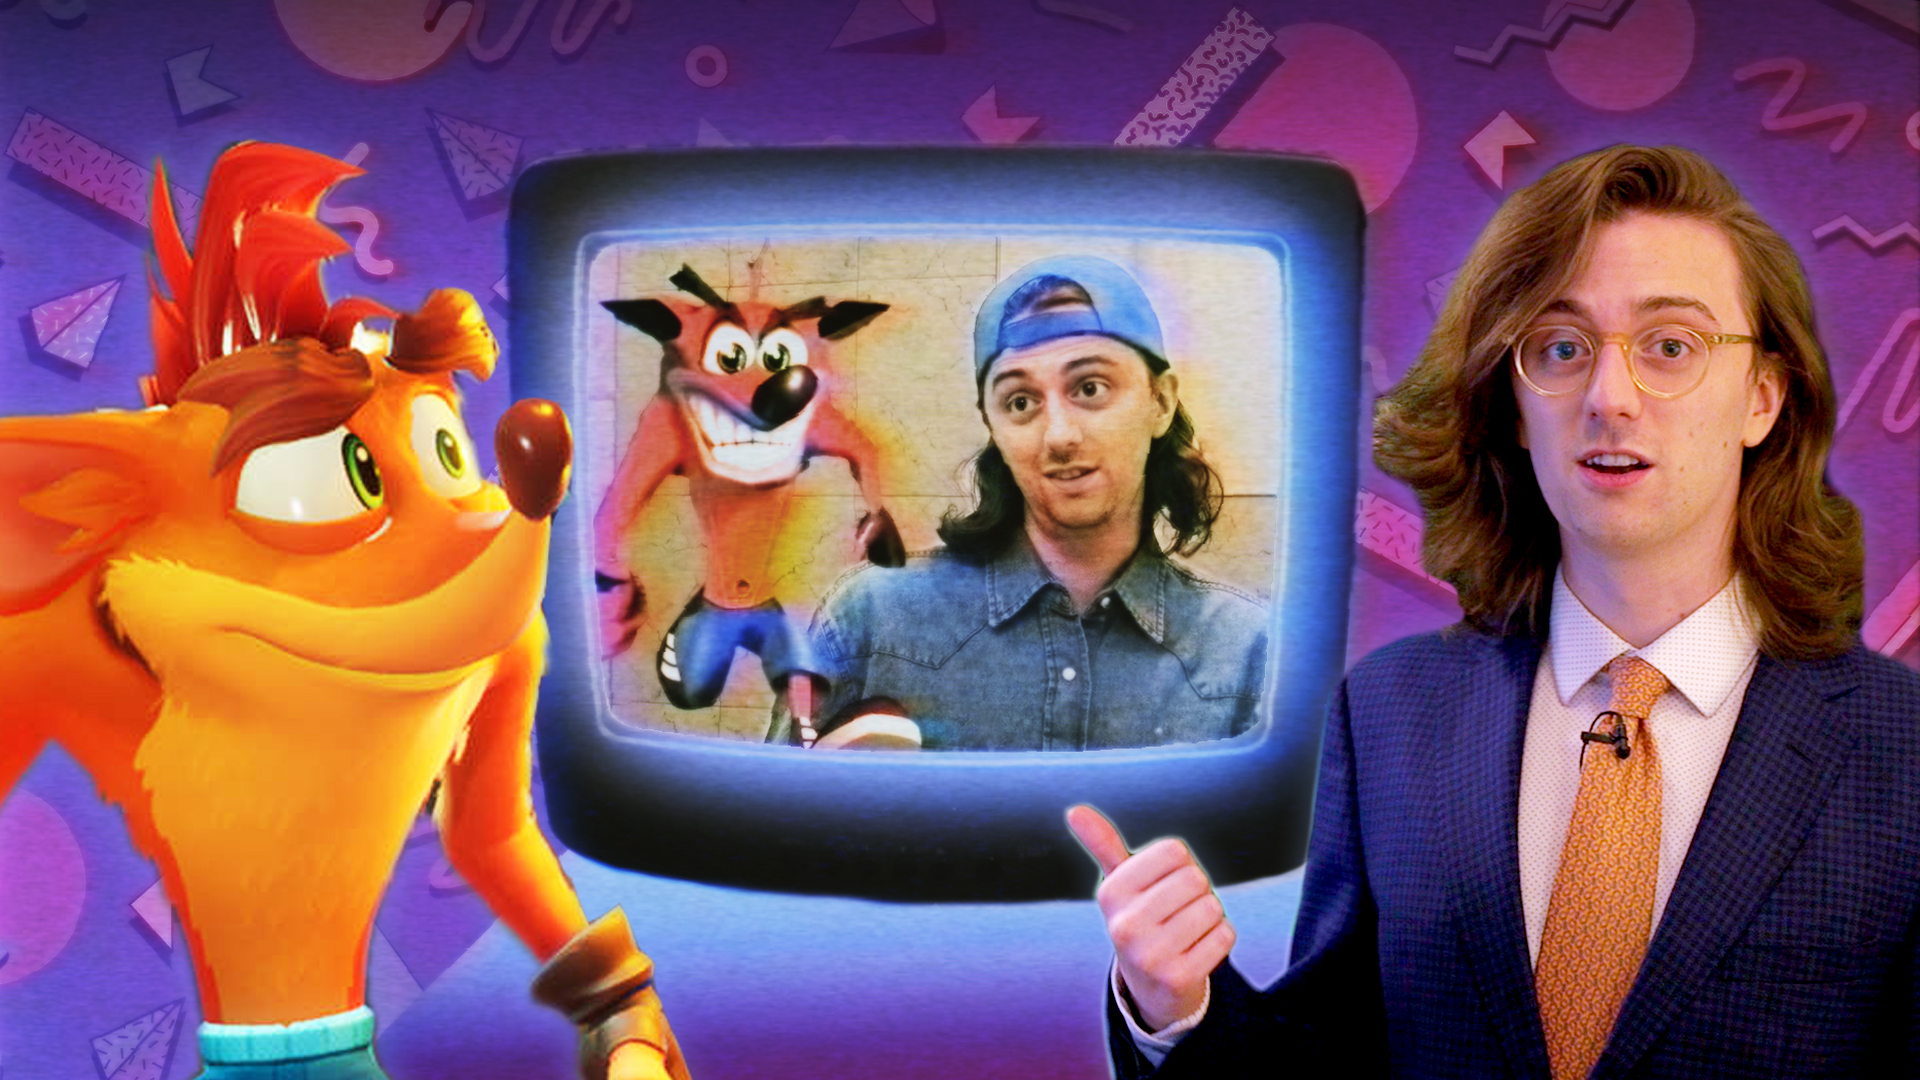 Modern Crash Bandicoot and Brian David Gilbert stand in front of a CRT TV that shows an image of '90s Crash Bandicoot and Brian wearing a ful denim outfit .